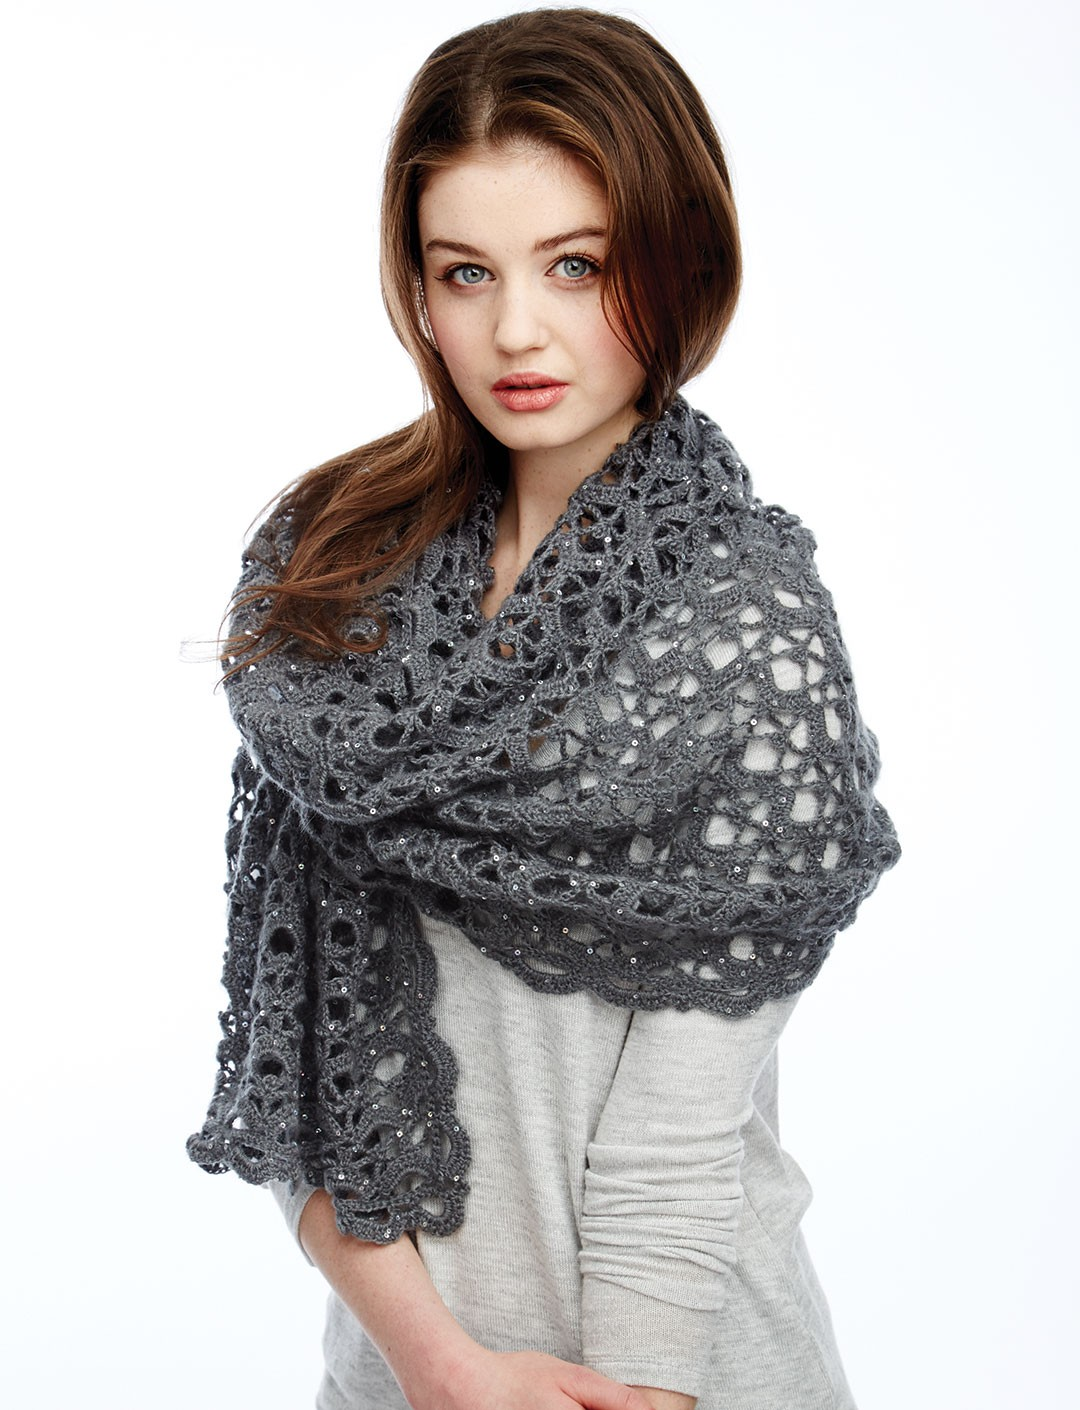 Free Crochet Patterns Using Patons Lace Yarn : Crochet Shawls, Sweaters and Shrugs on Pinterest Shawl ...